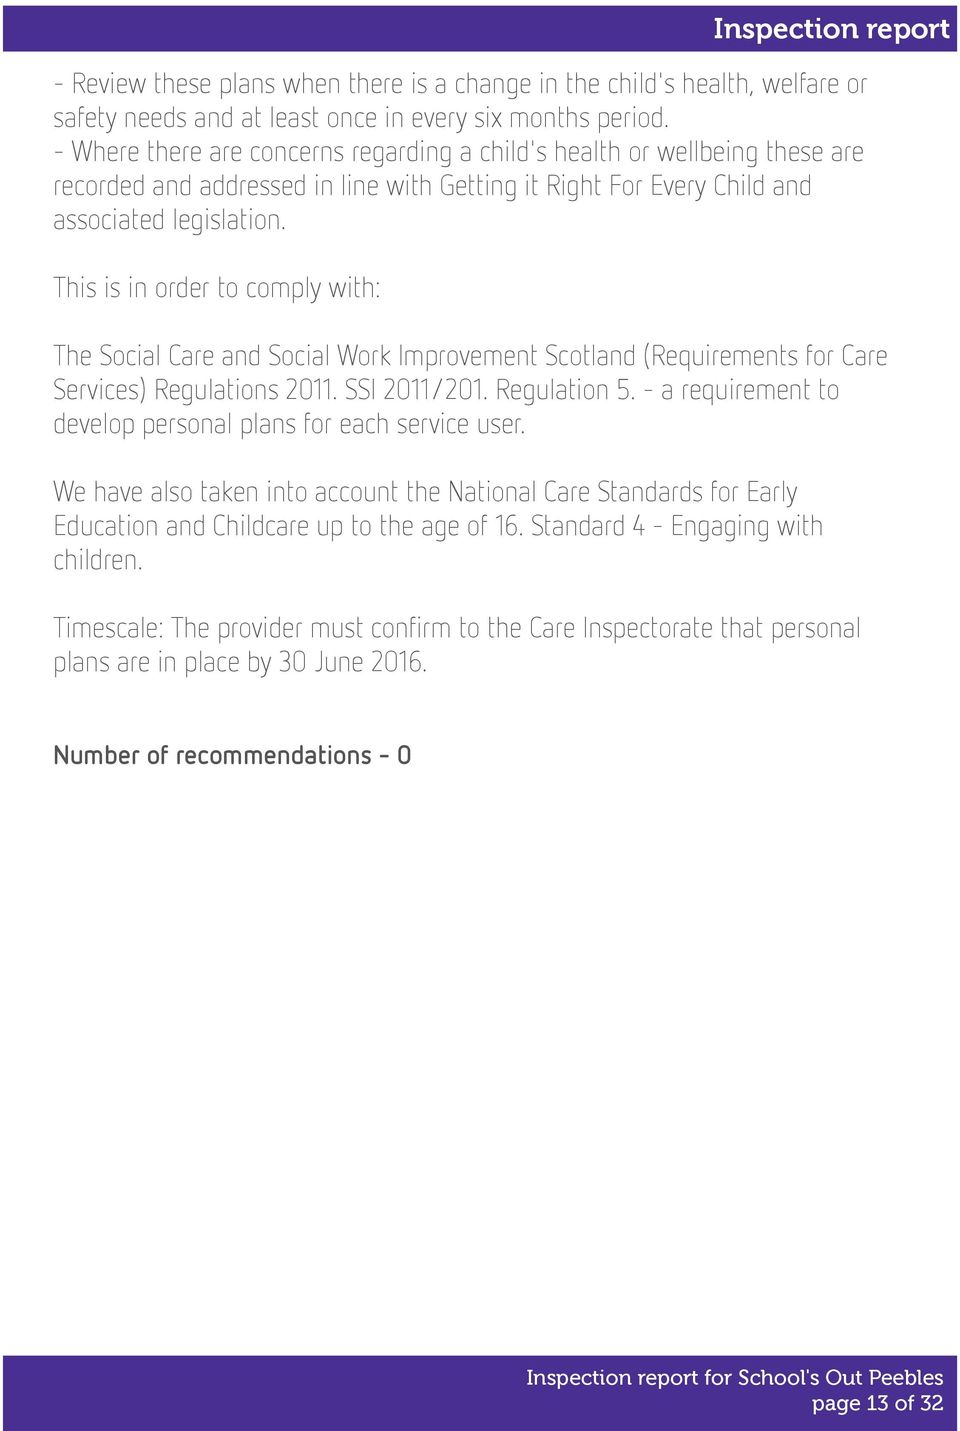 This is in order to comply with: The Social Care and Social Work Improvement Scotland (Requirements for Care Services) Regulations 2011. SSI 2011/201. Regulation 5.